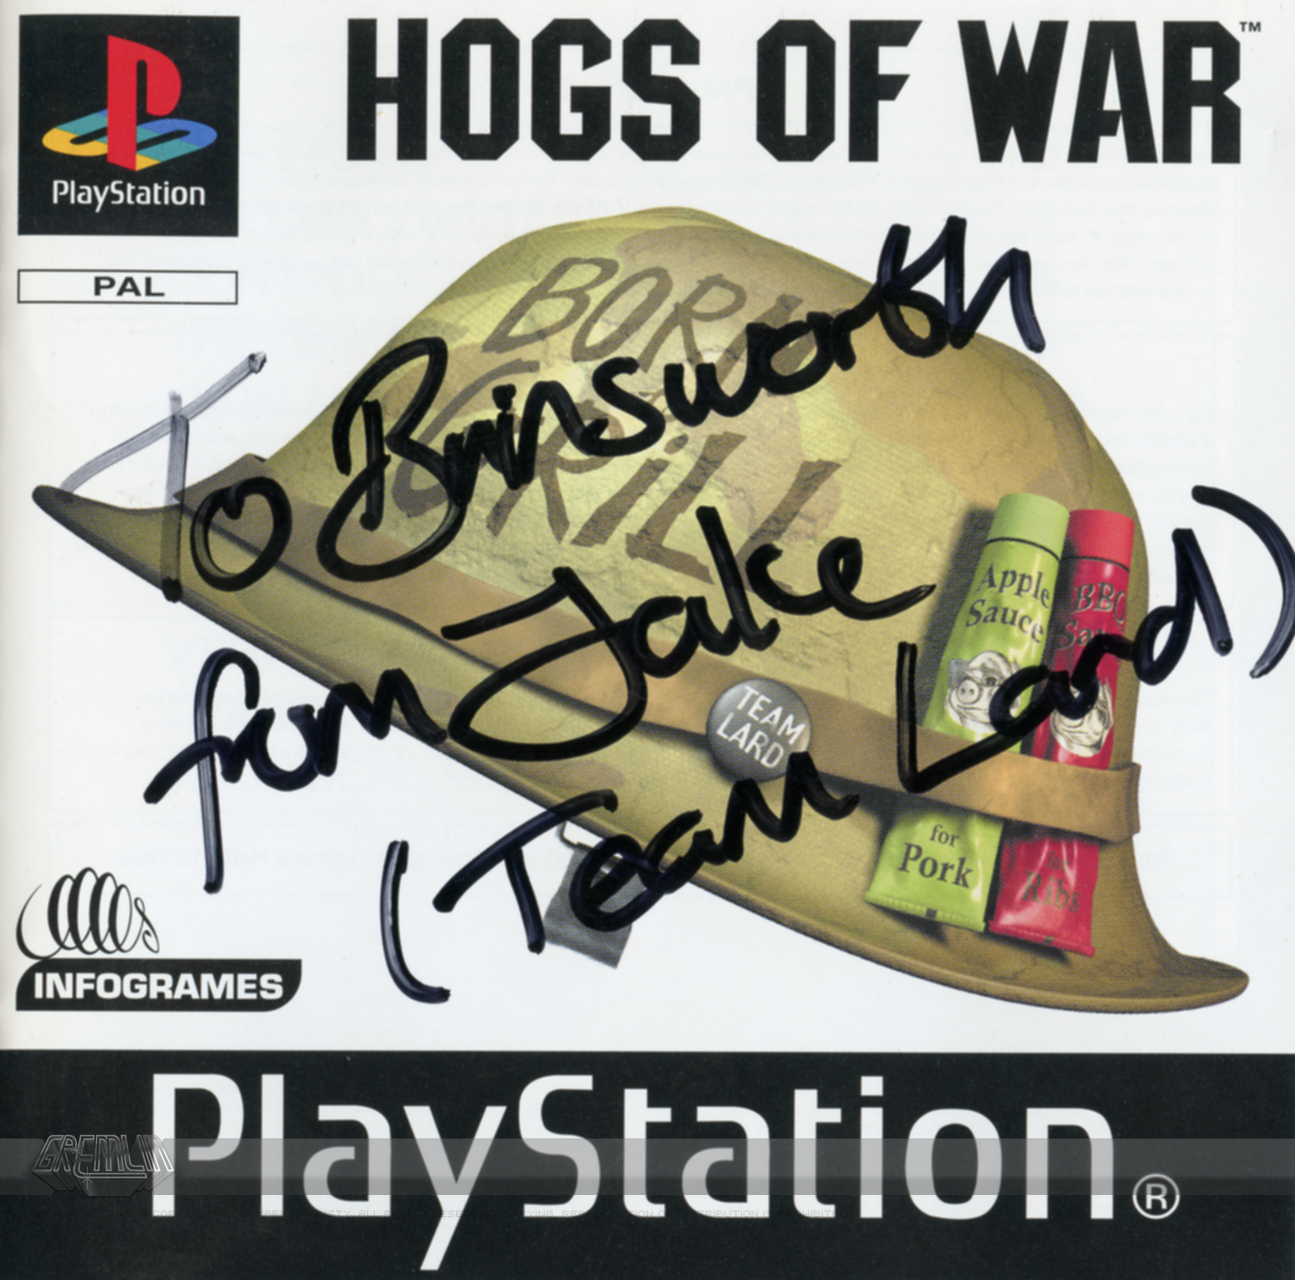 Signed Playstation Hogs of War